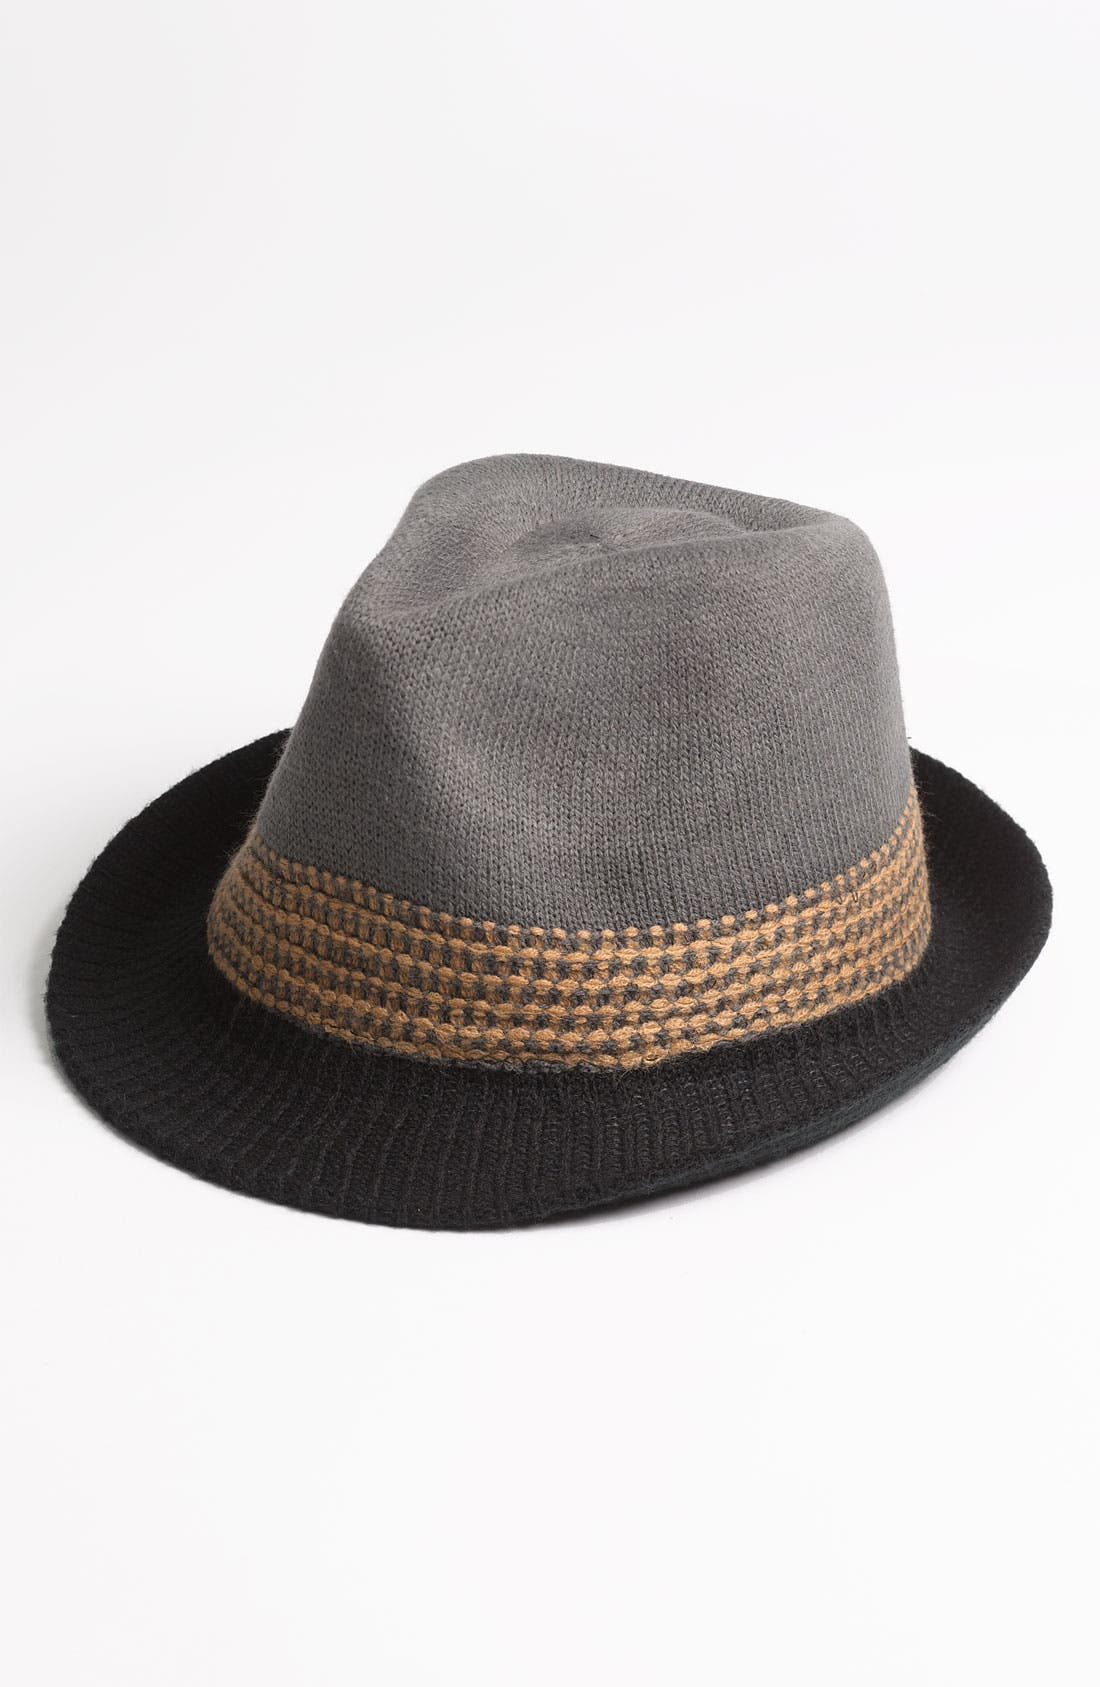 Alternate Image 1 Selected - Collection XIIX Colorblock Packable Fedora